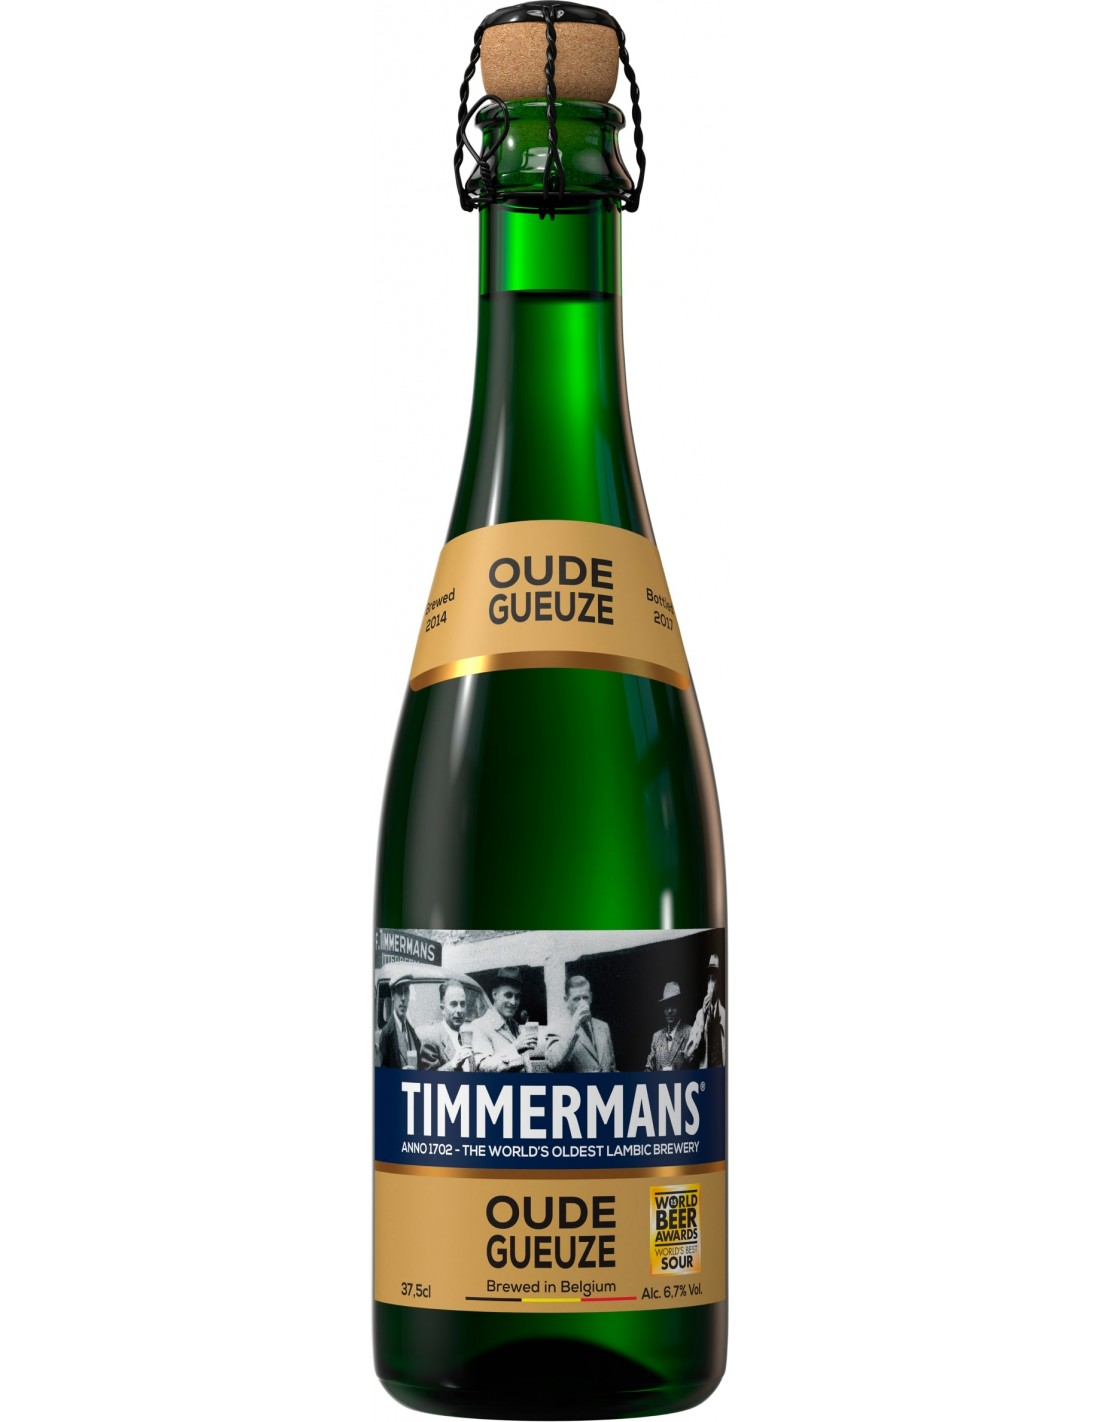 Bere TIMMERMANS OUDE GUEUZE 0.375L